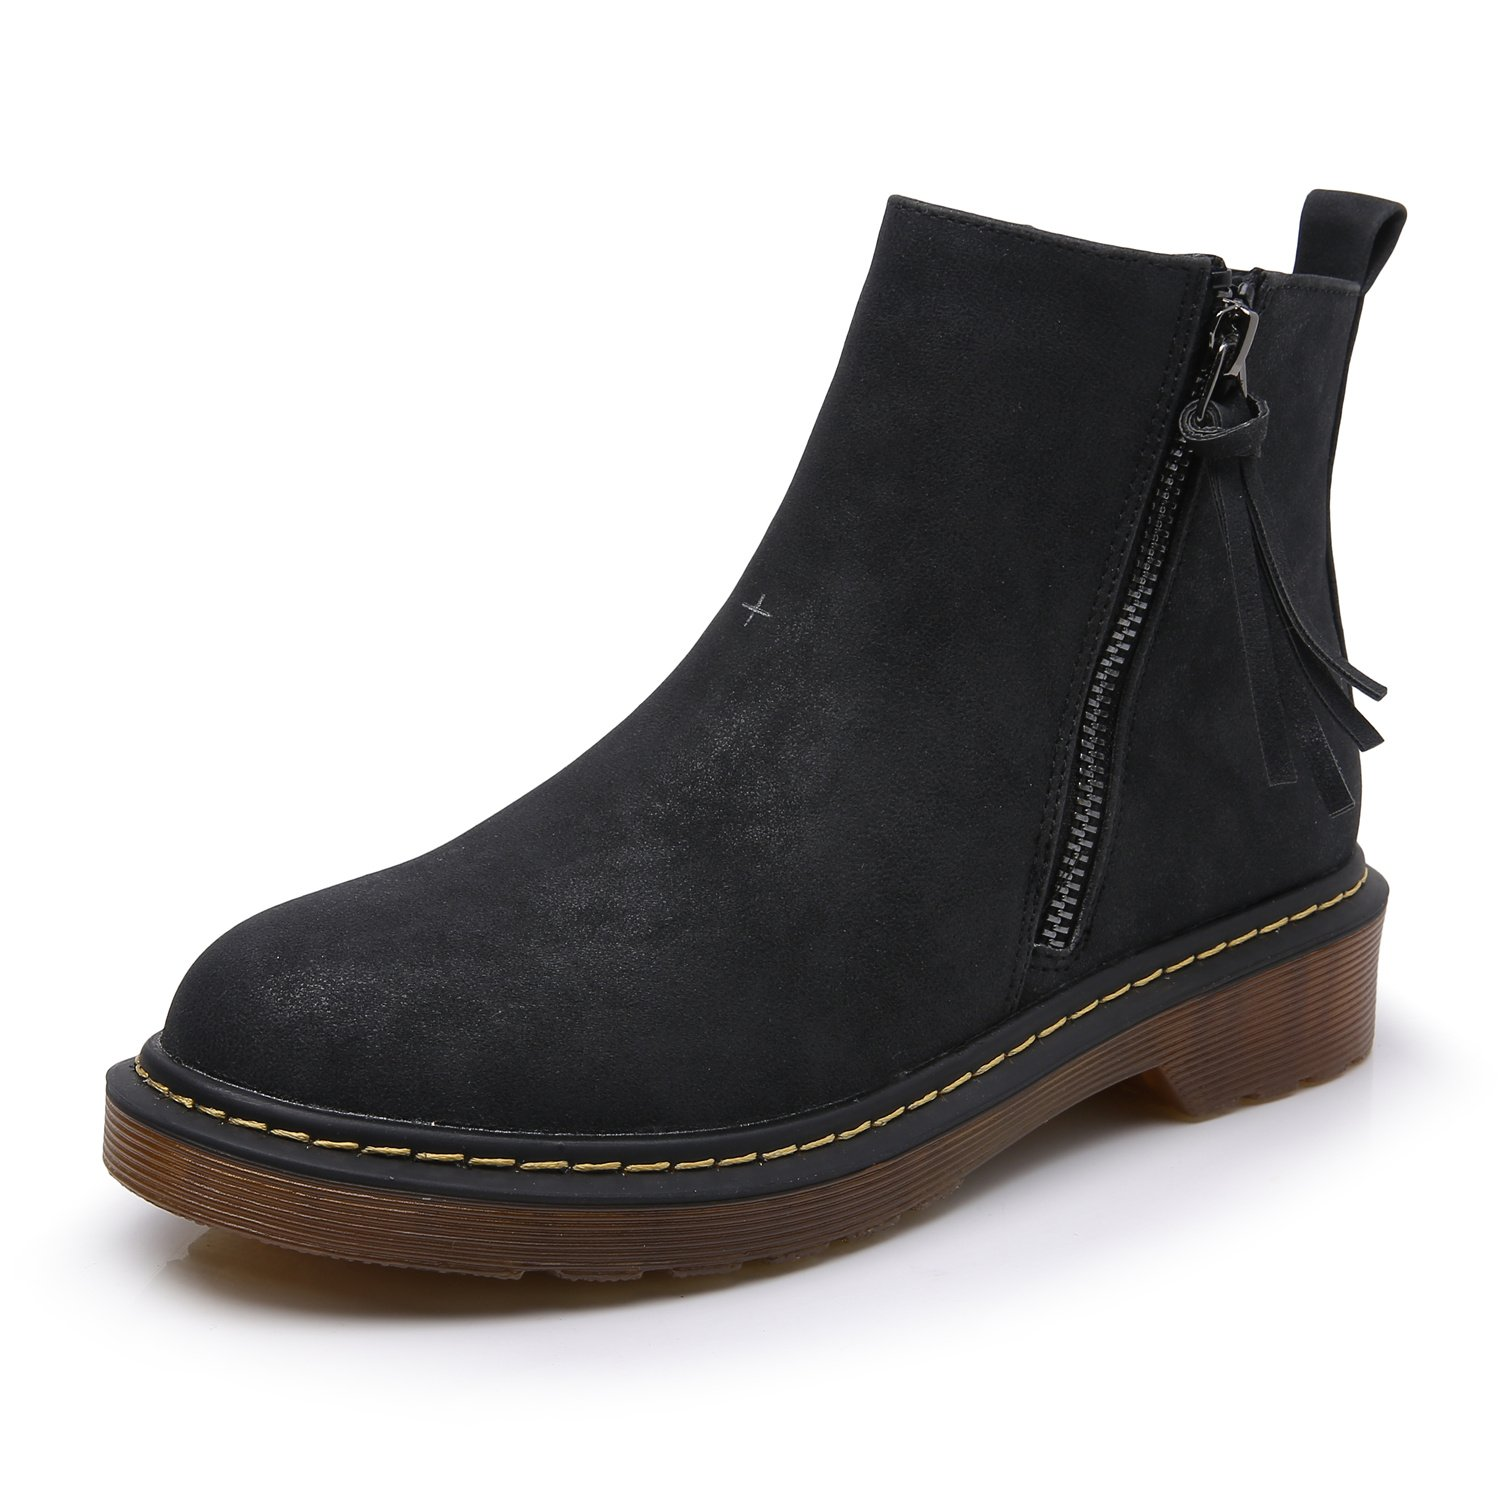 Smilun Unisex Audults Classic Comfortable Warm Chelsea Boots Zip 4 cm Heel Chelsea Boots Zip Shoes for Women Men Black US9.5